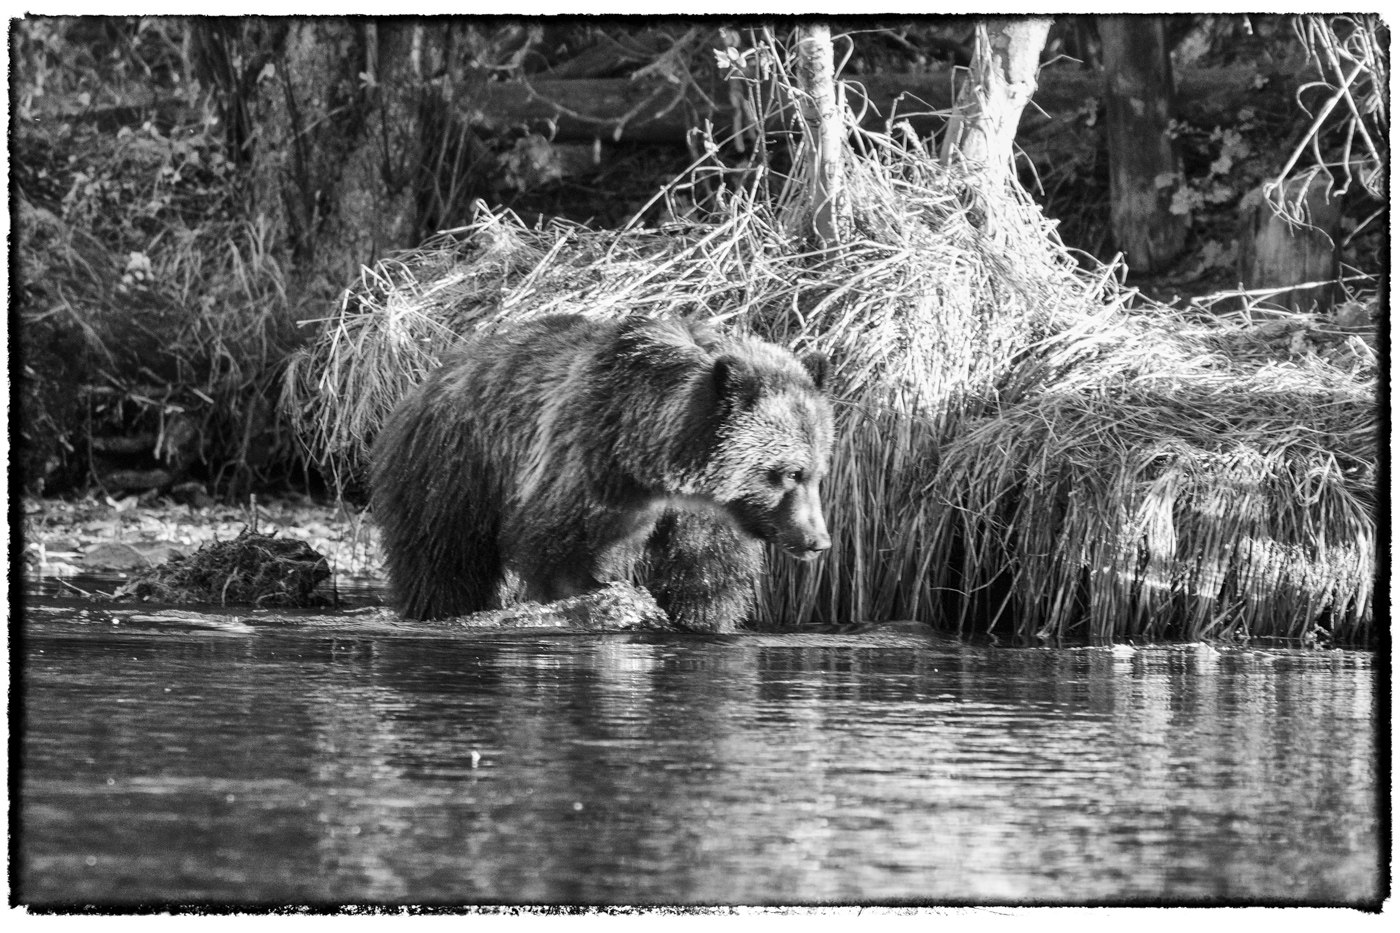 Grizzly Cub in Black and White